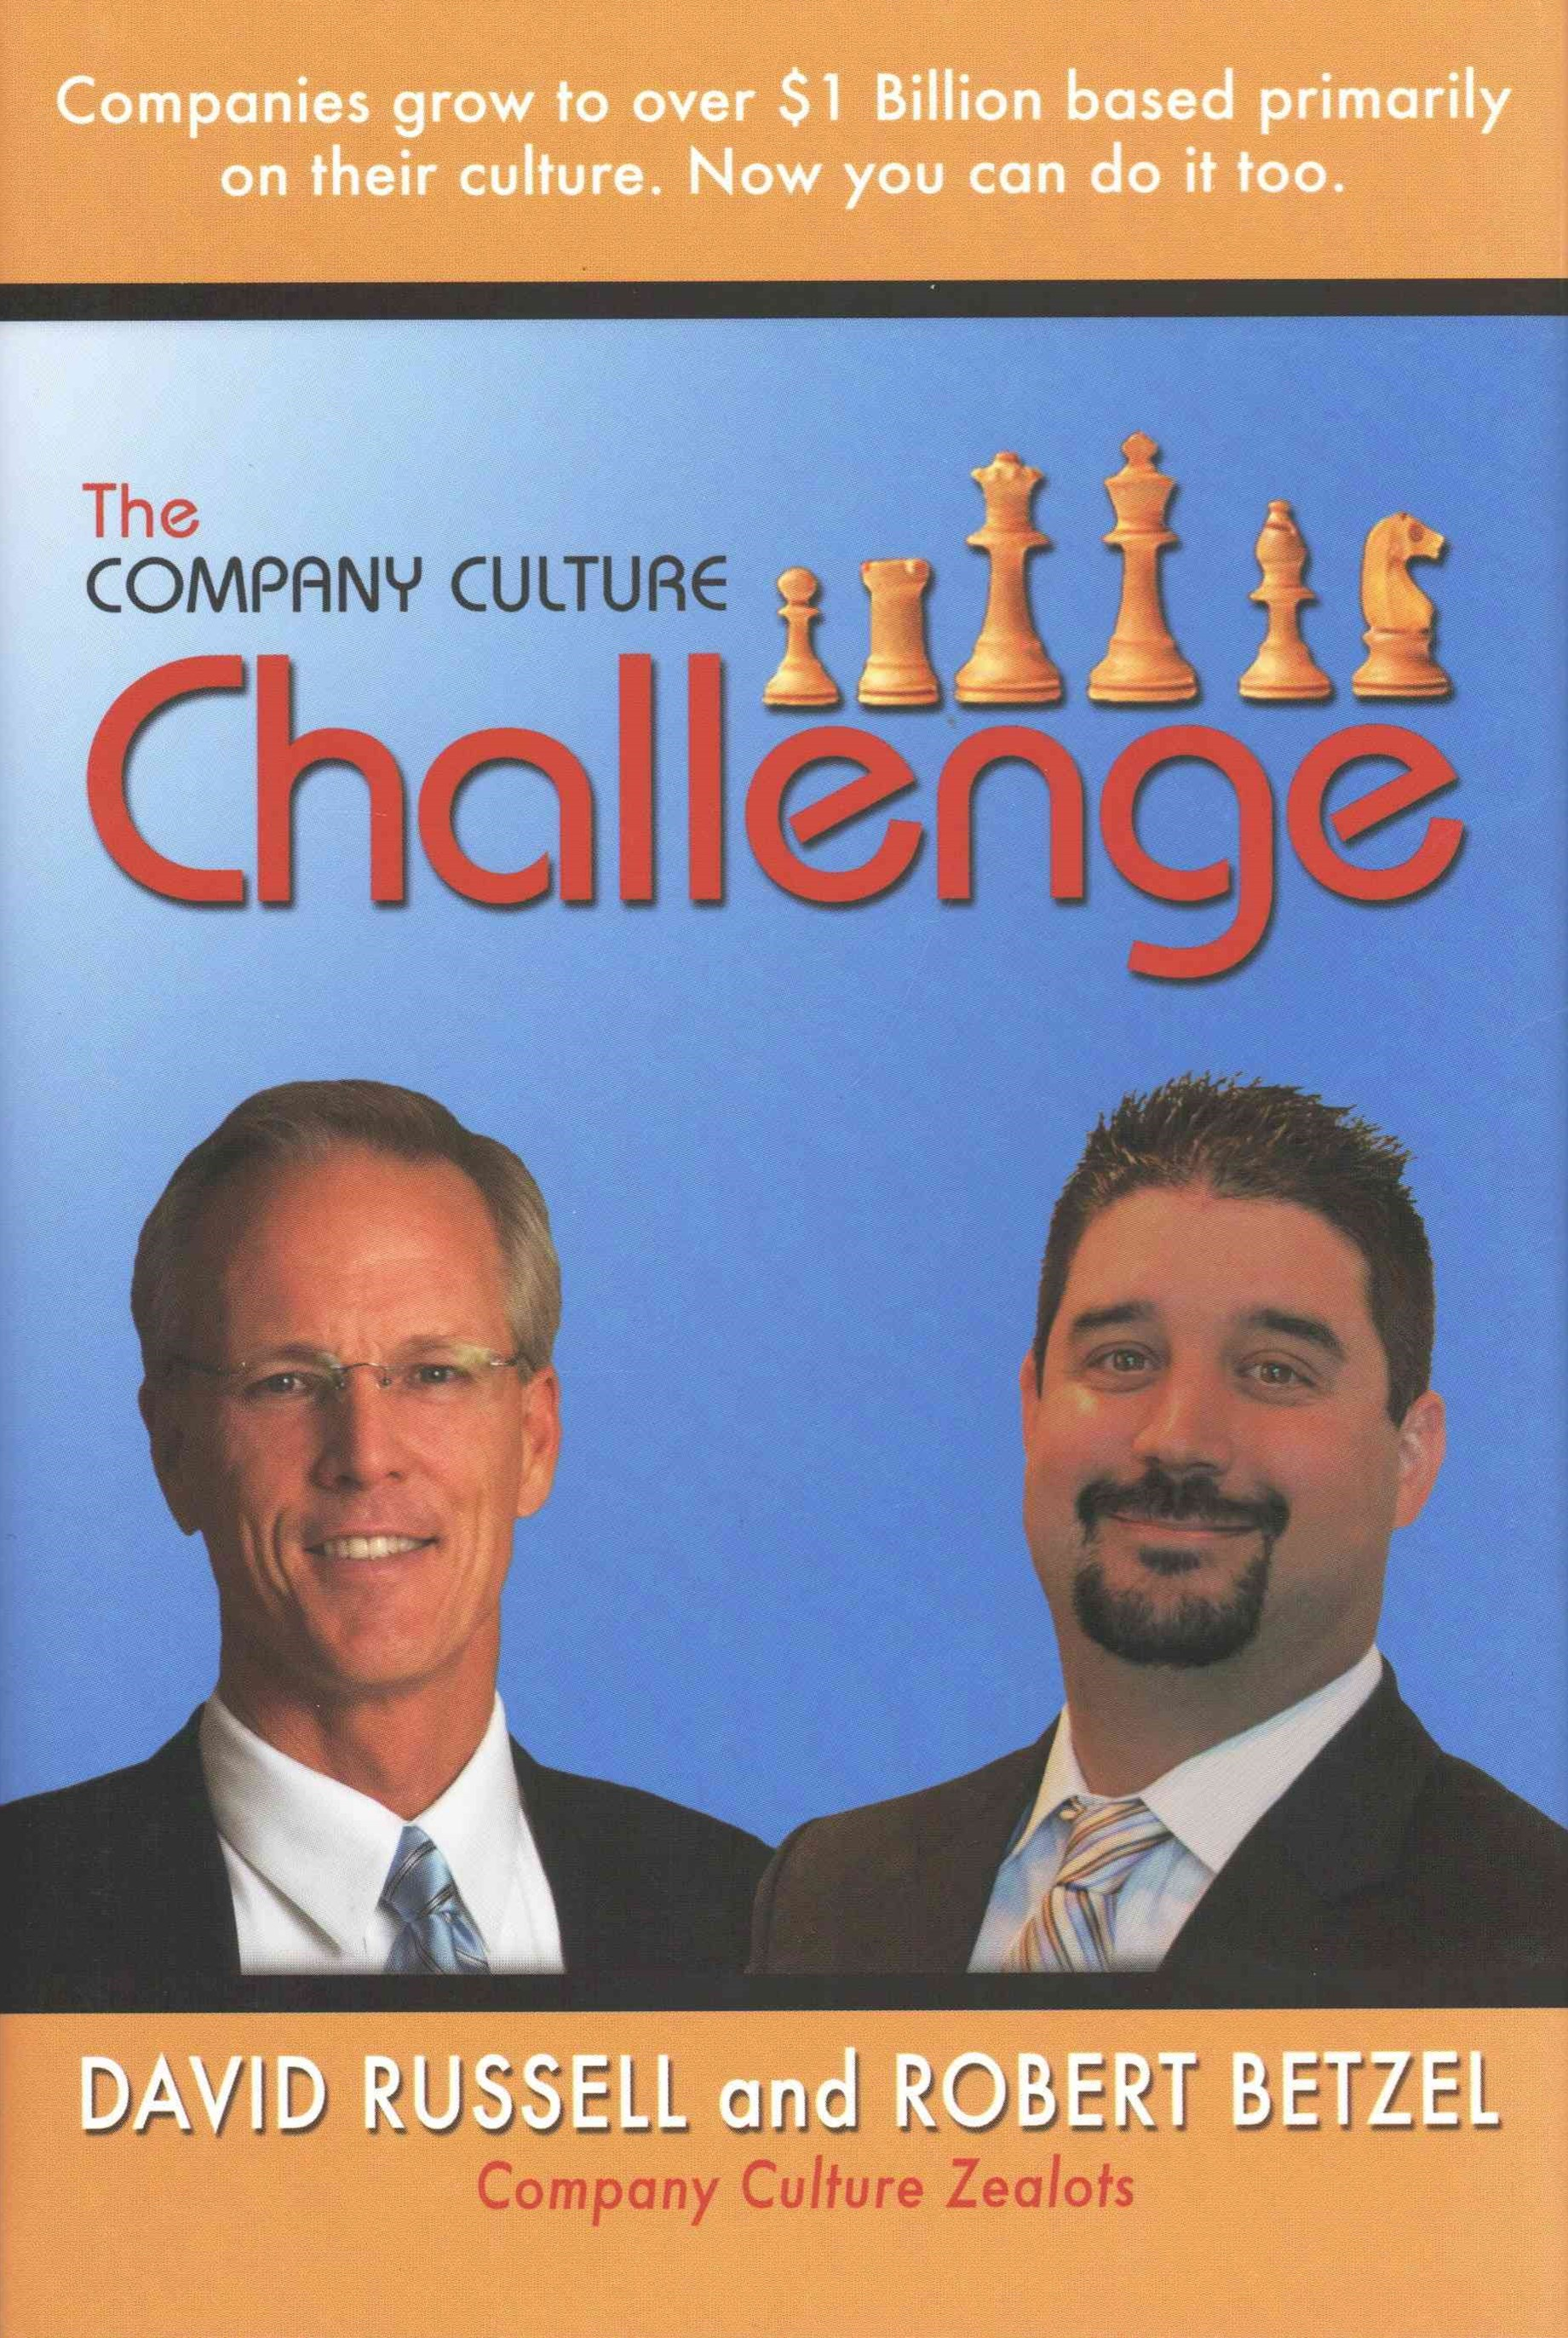 Company Culture Challenge